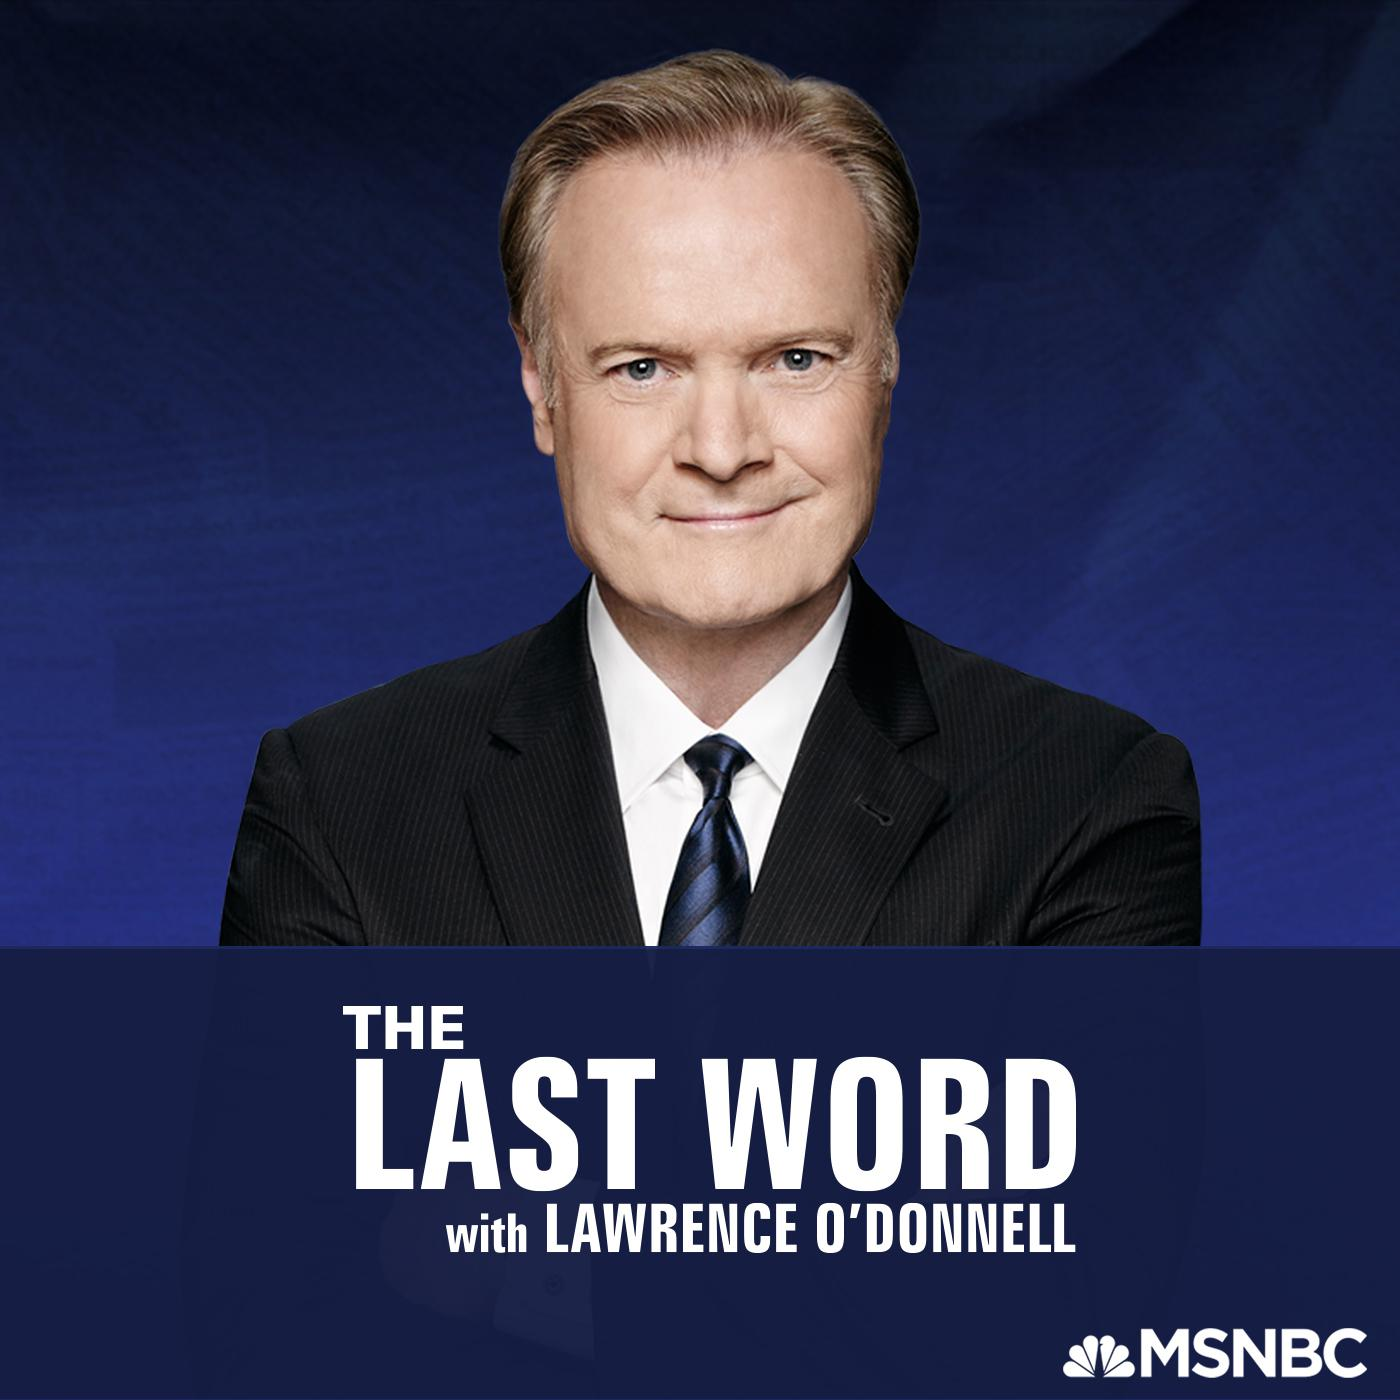 The Last Word with Lawrence O'Donnell (podcast) - Lawrence O